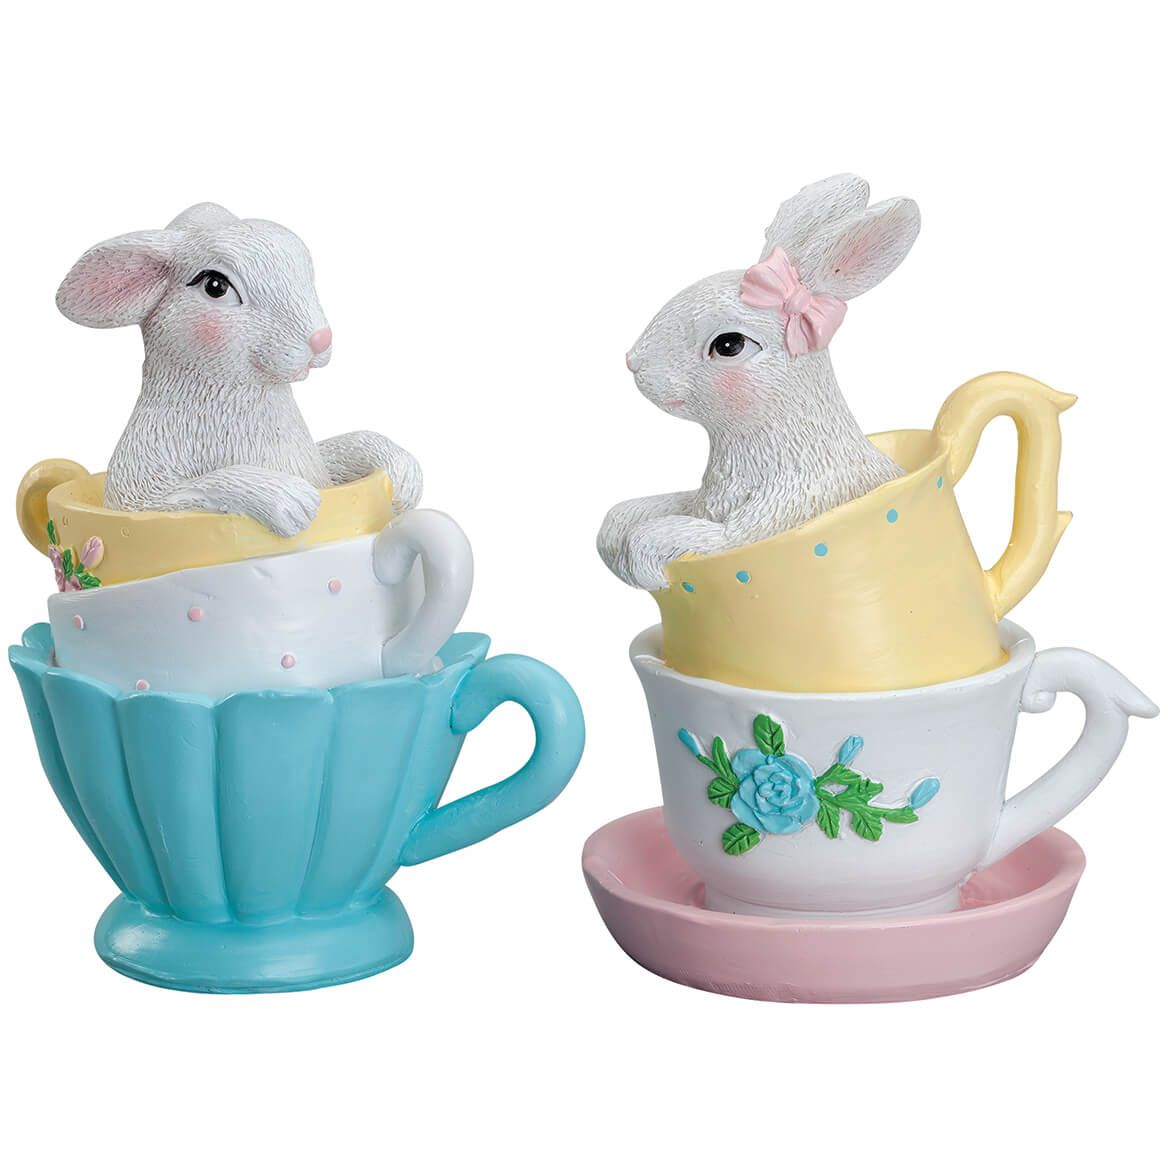 Resin Bunnies in Teacups, Set of 2 by Holiday Peak™-371181